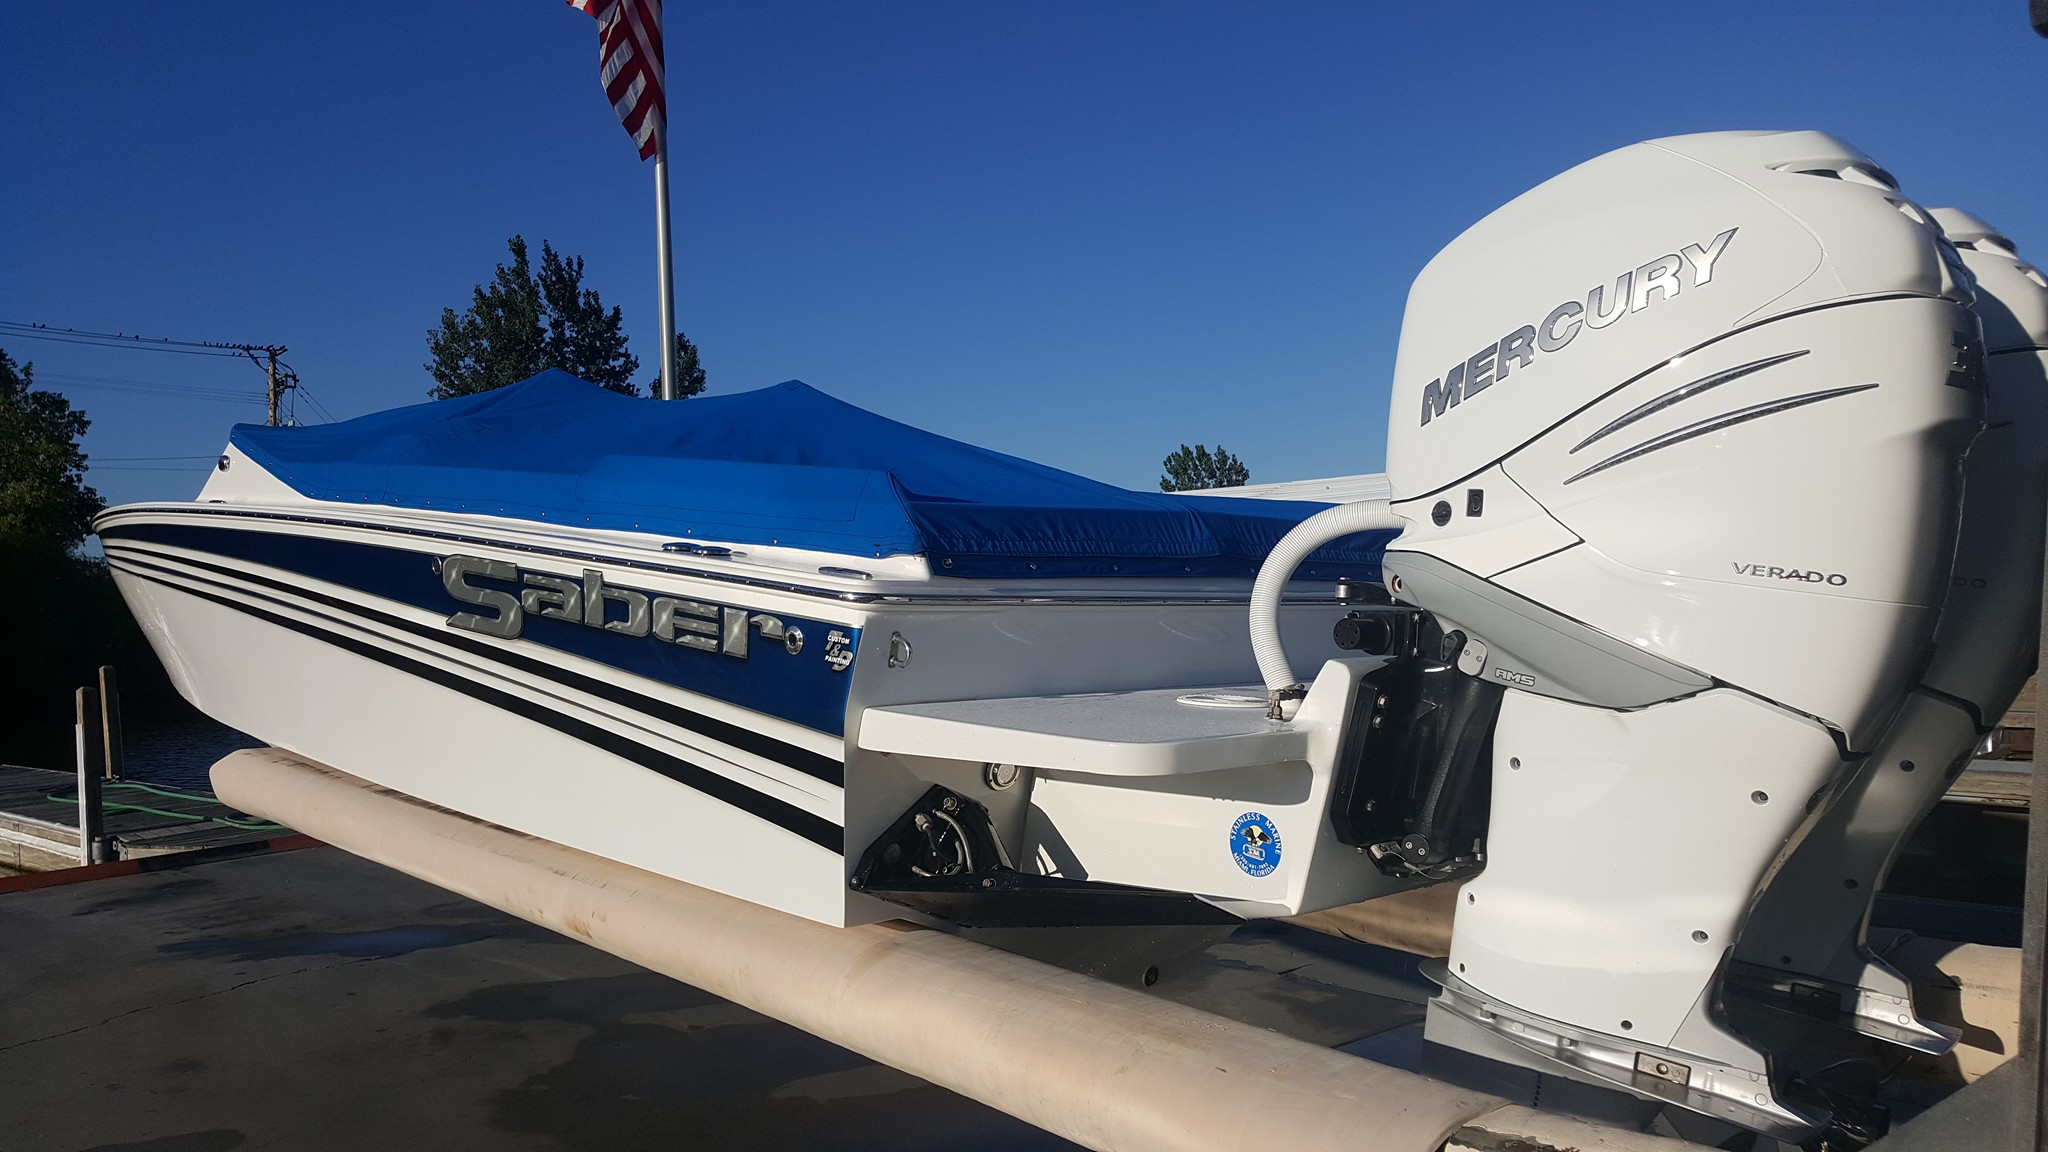 Saber Marine builds their beautiful 28 with outboards. A Stainless Marine bracket allows for an easy installation. Saber's are well built, traditional narrow hull offshore designs. Made in Michigan.